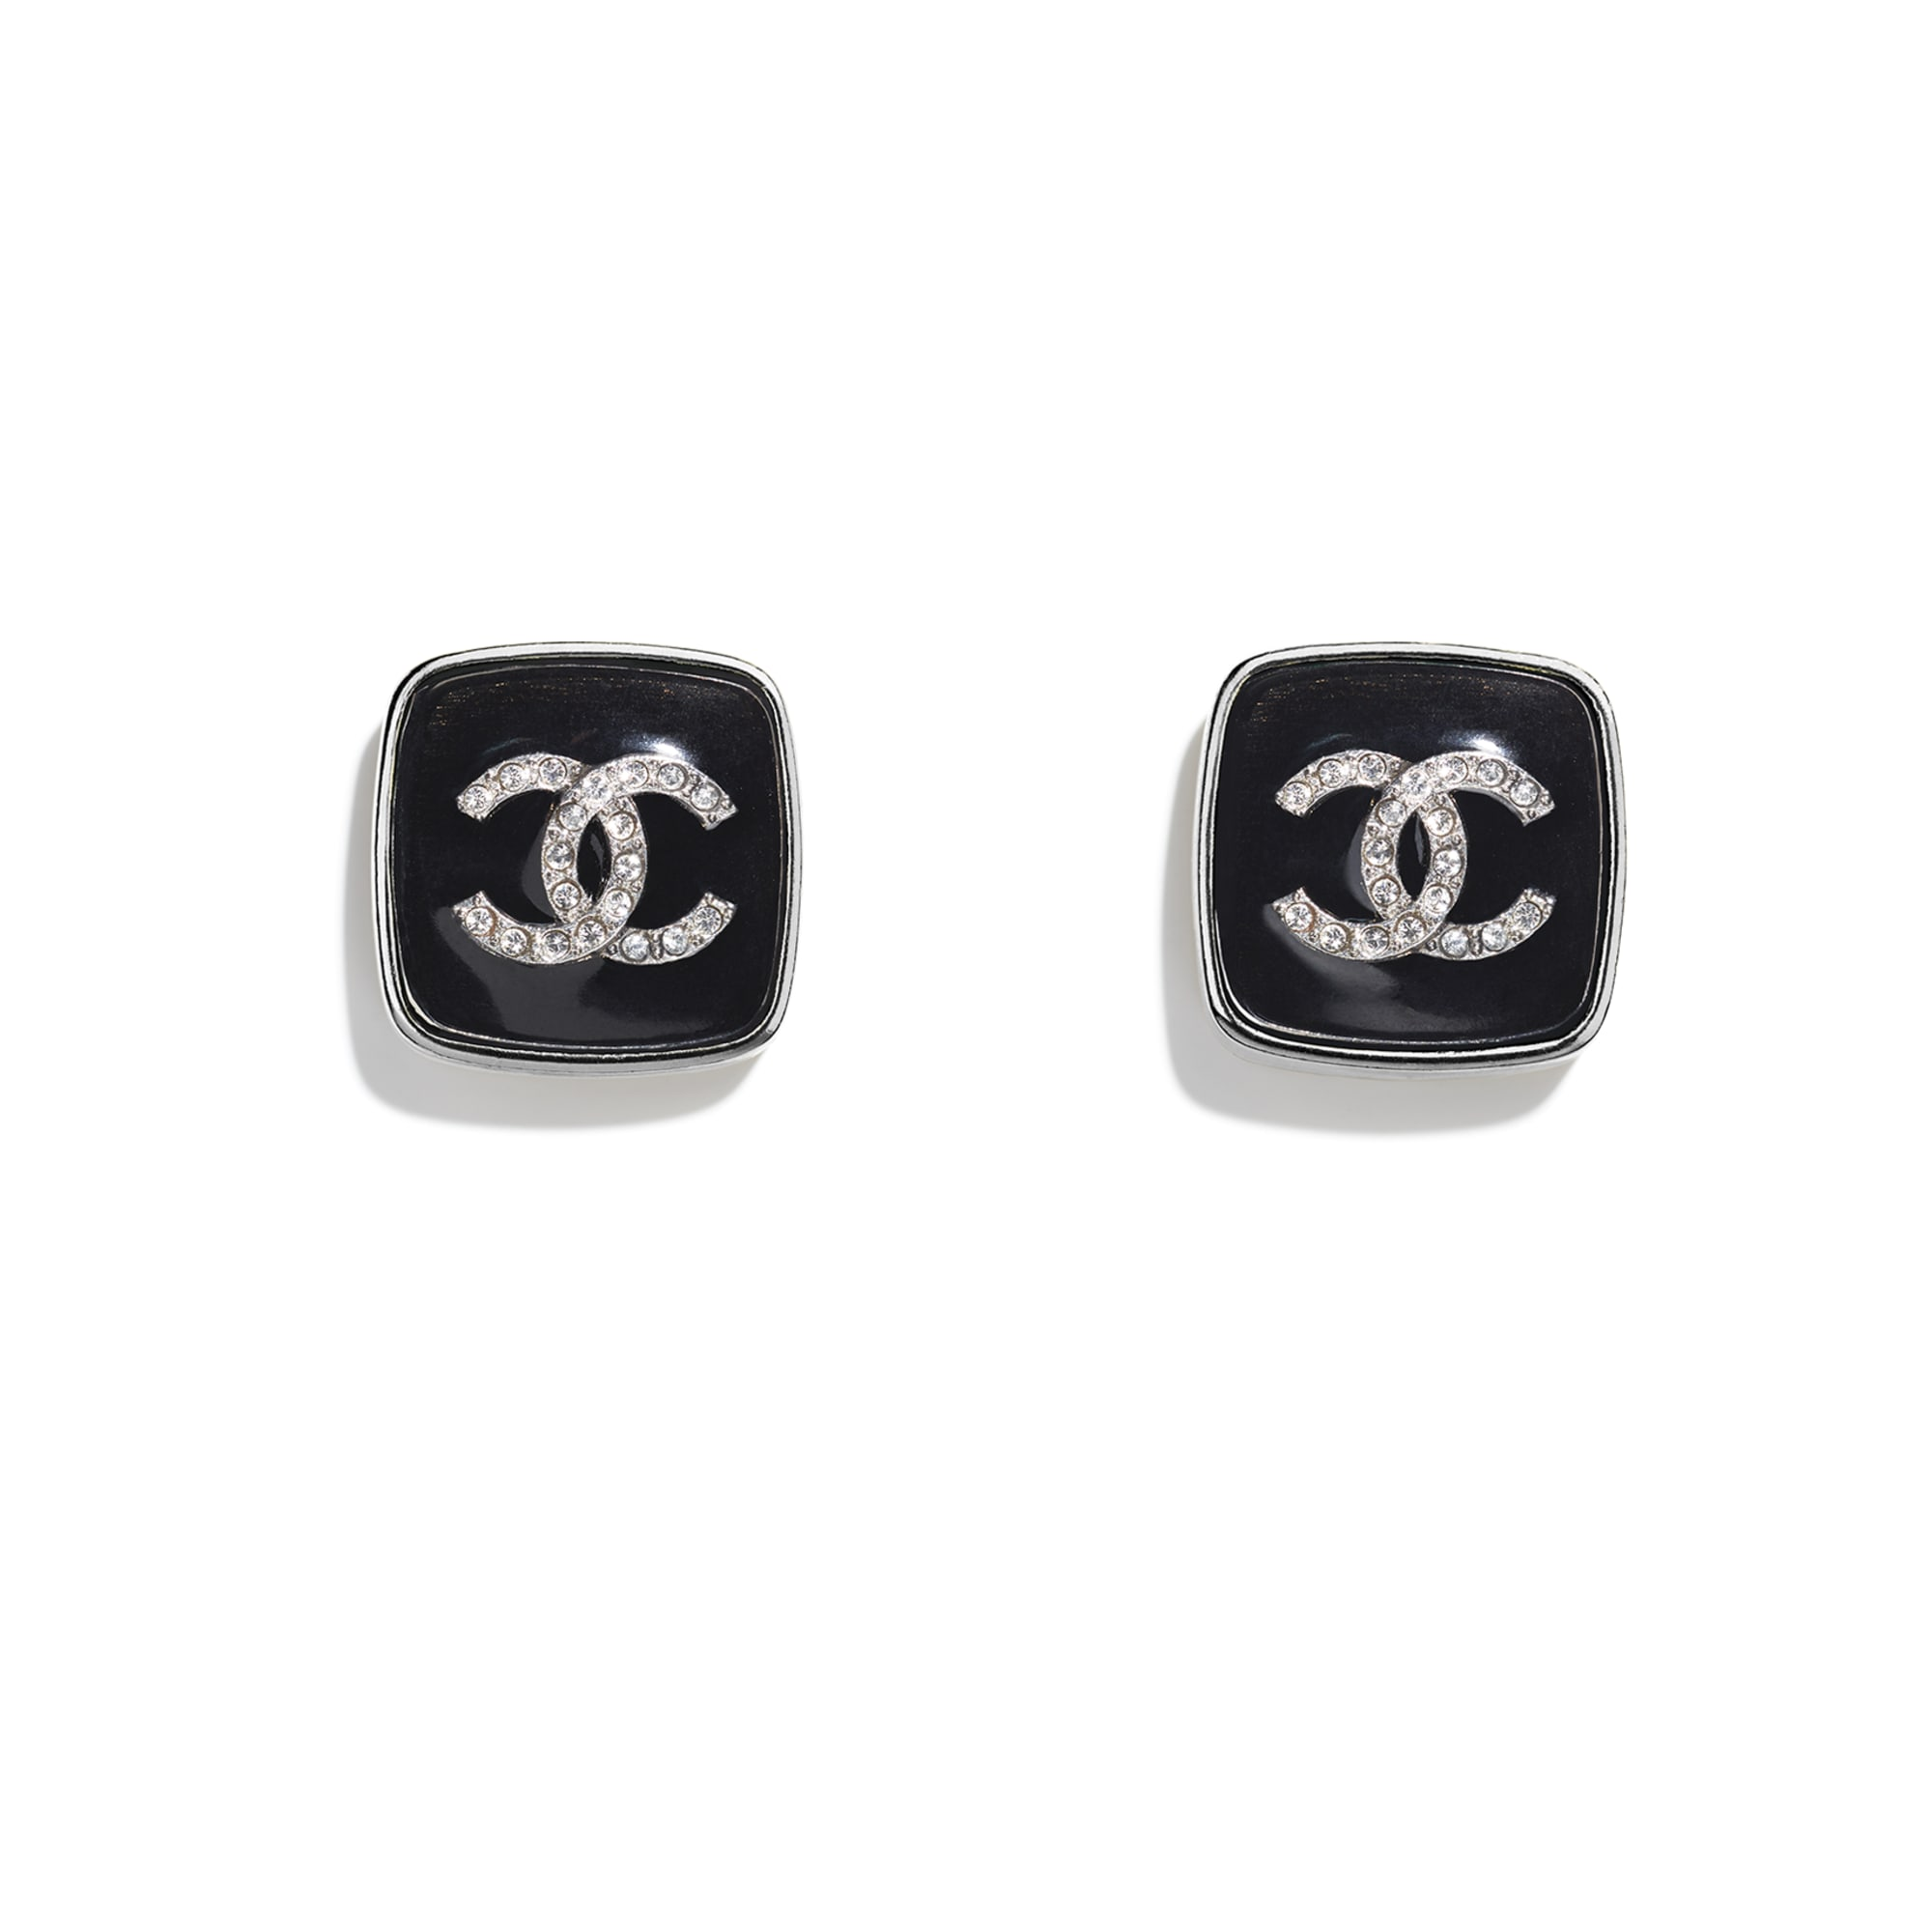 Earrings - Ruthenium, Black & Crystal - Metal & Diamantés - CHANEL - Default view - see standard sized version